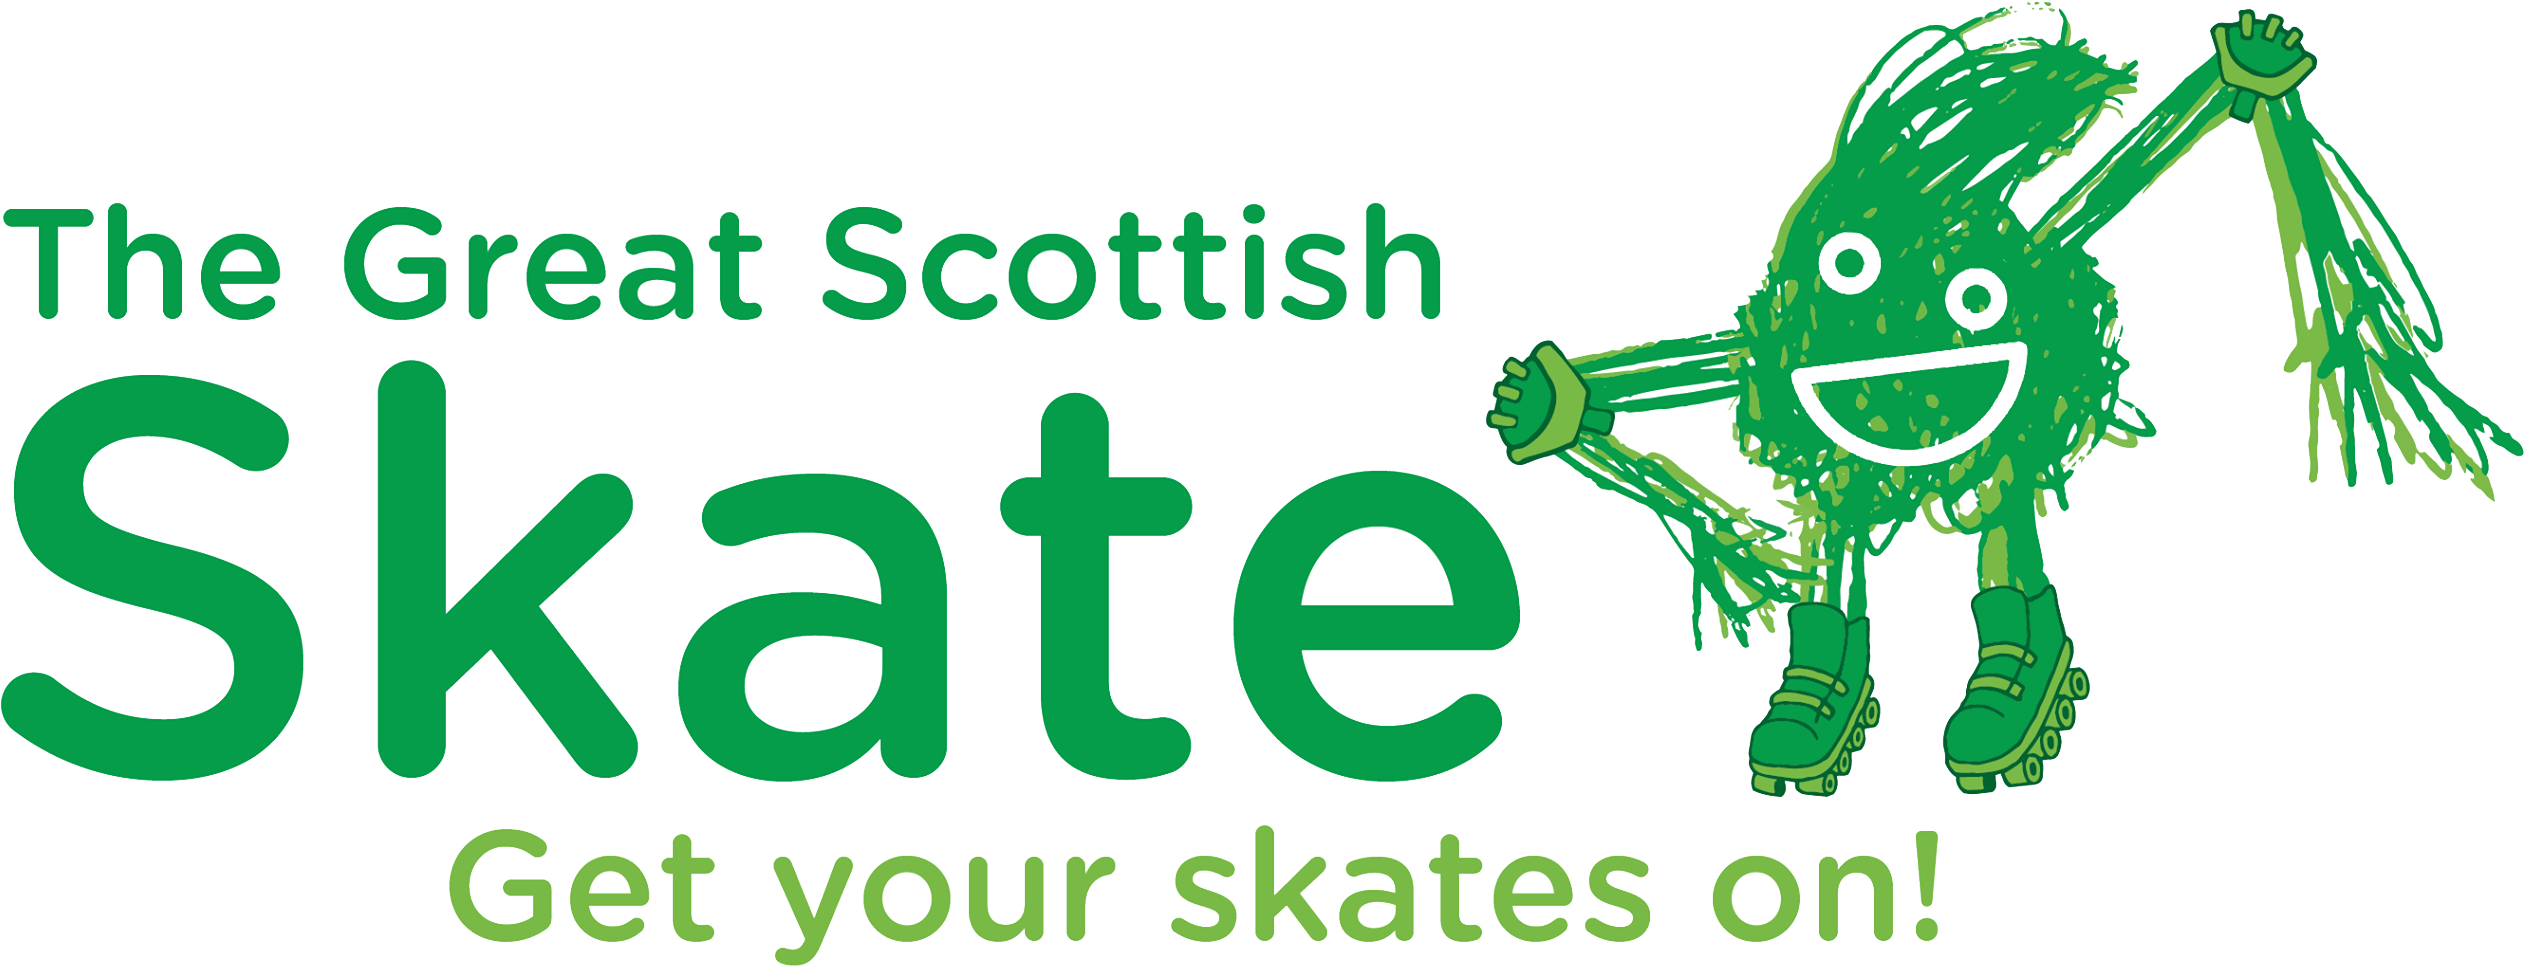 The Great Scottish Skate logo